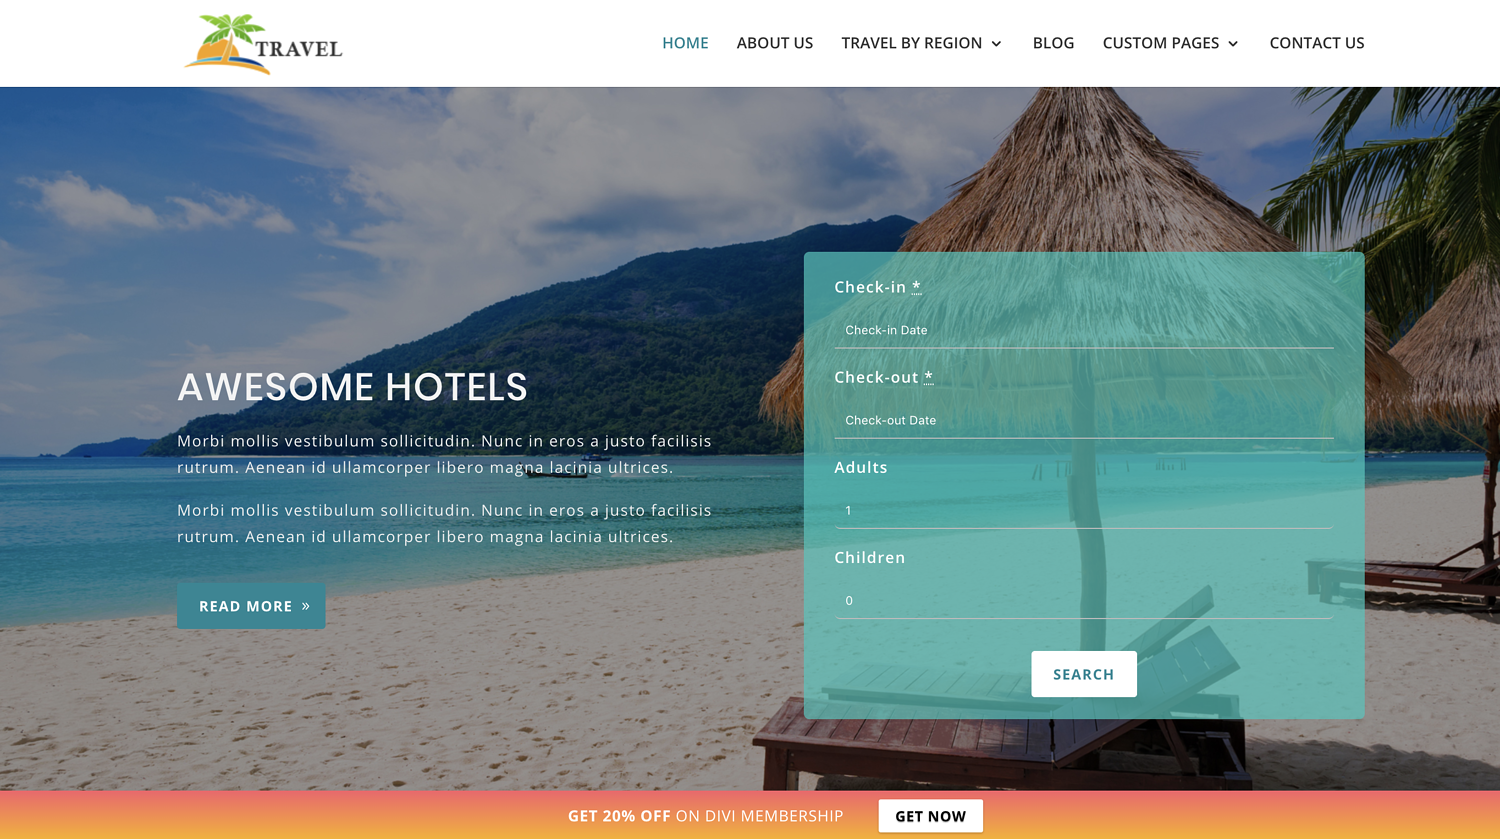 Travel theme to create travel business site using WordPress